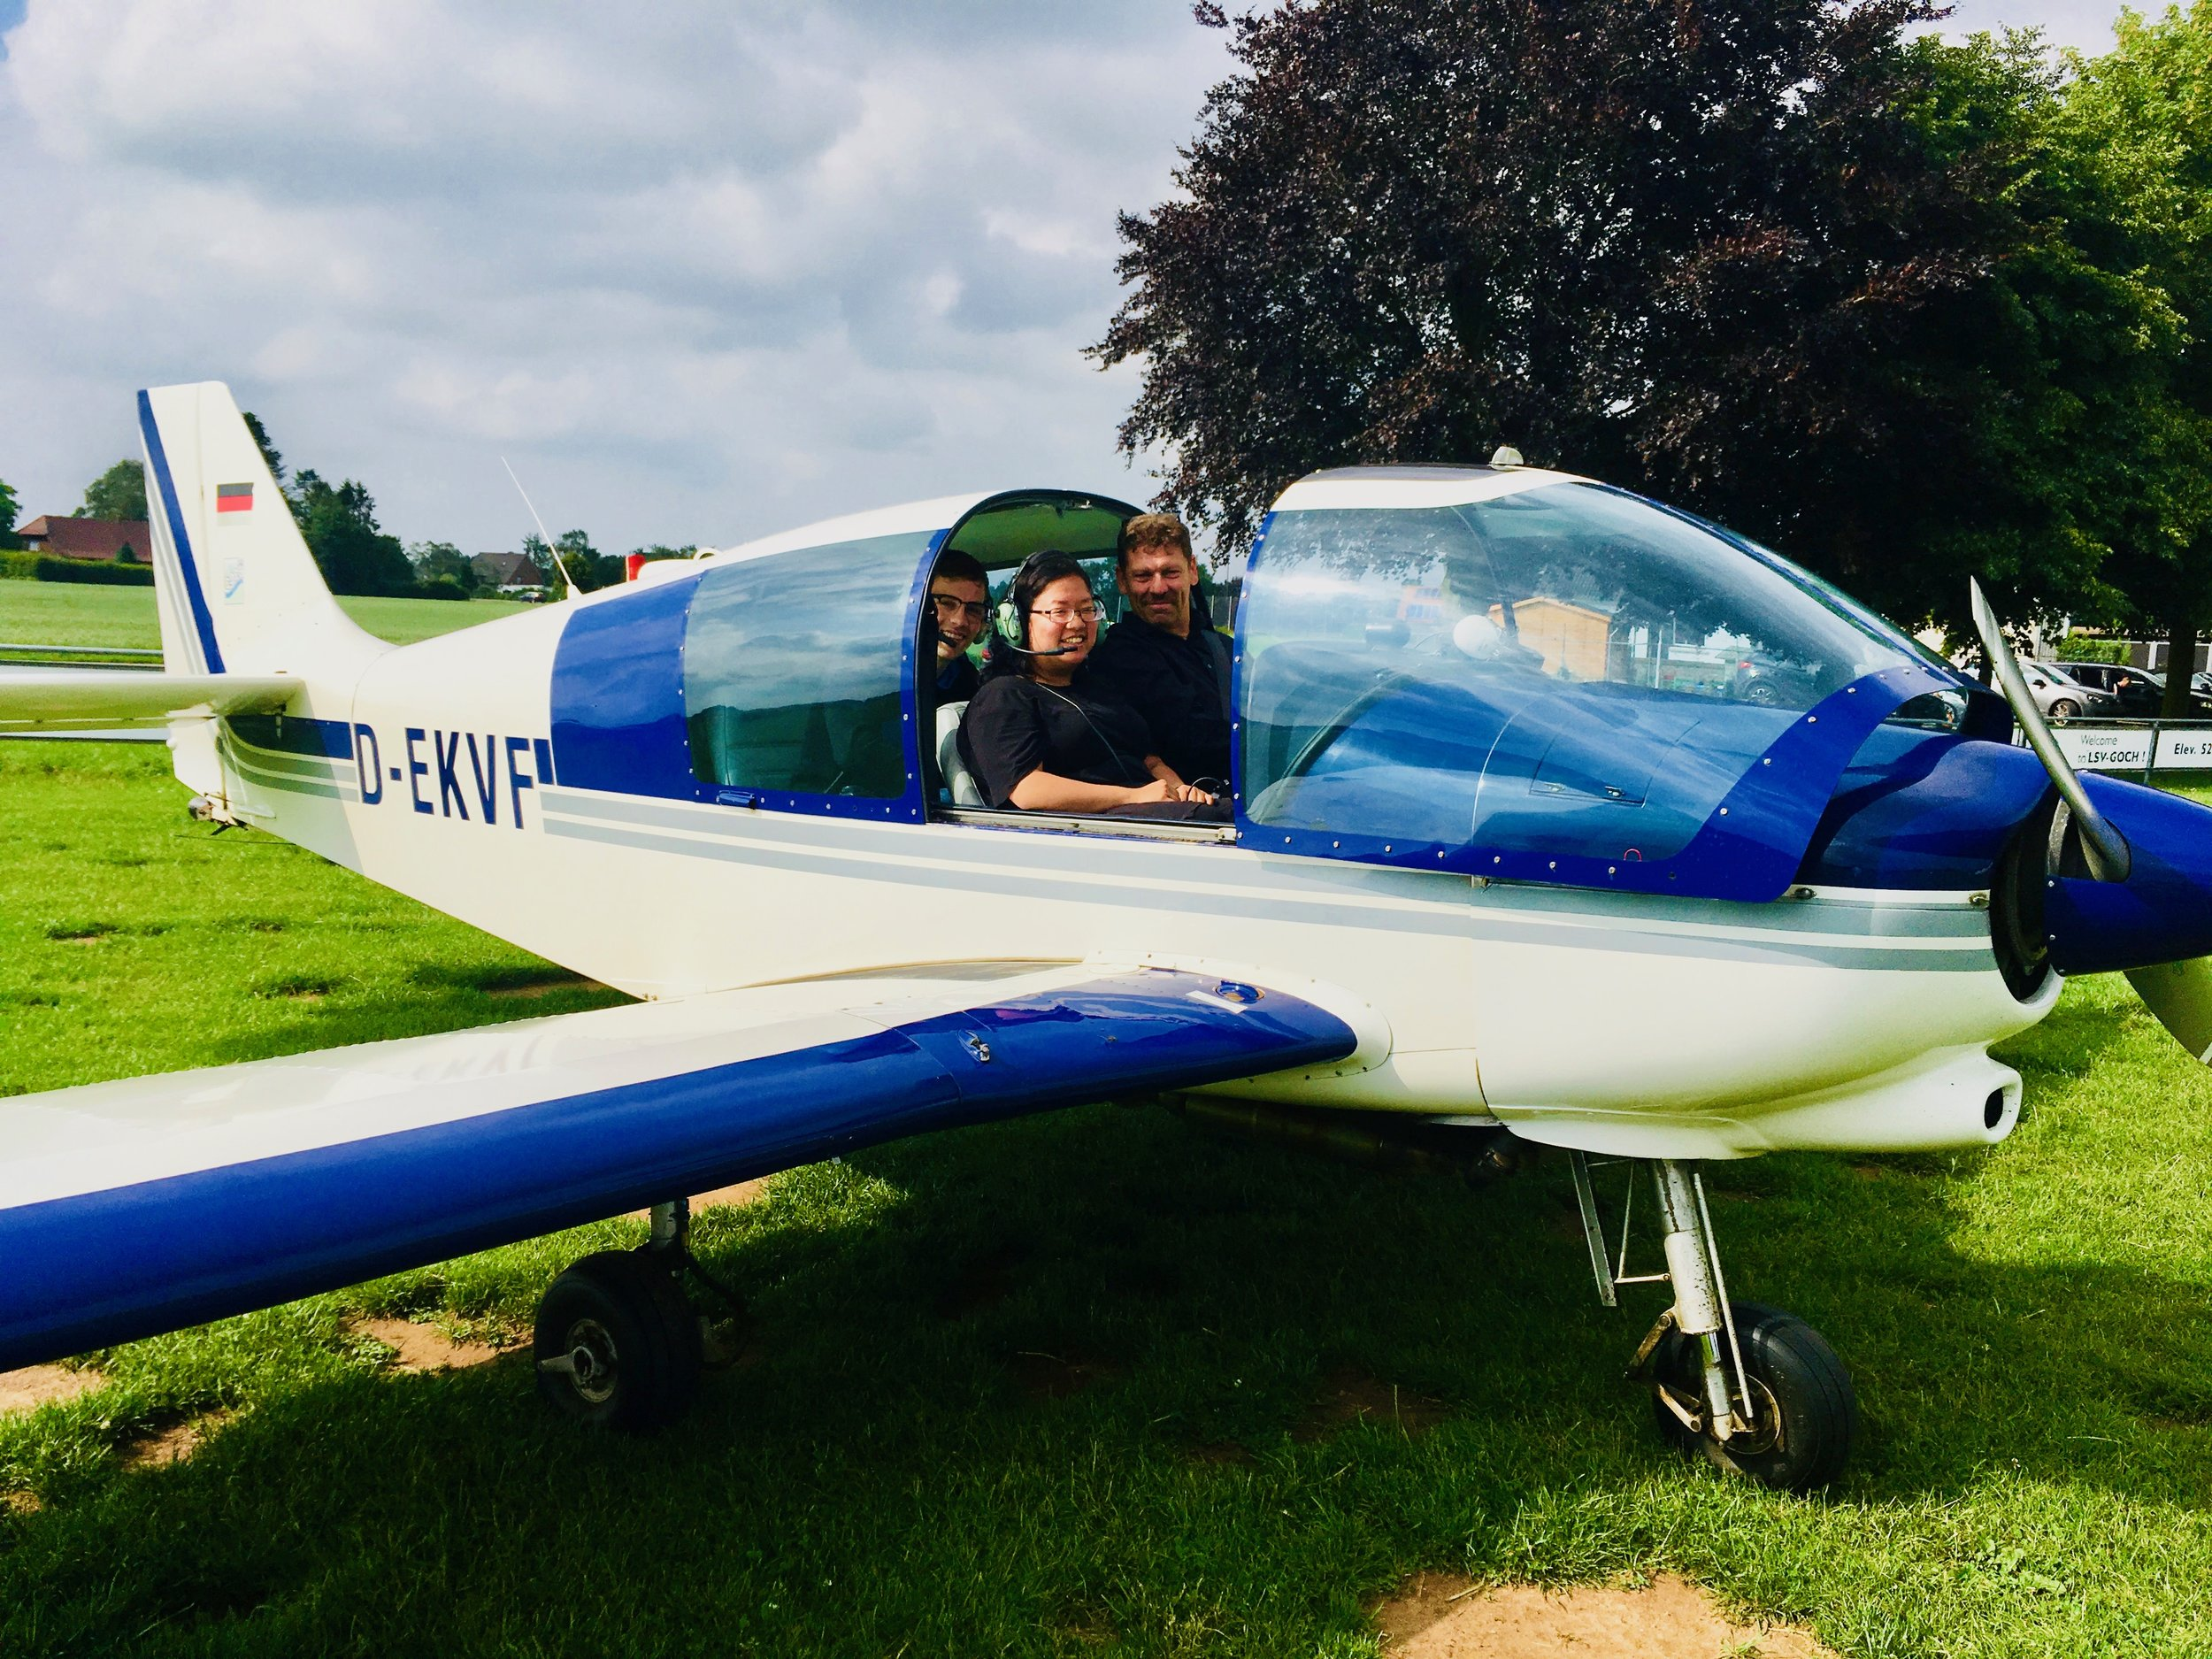 Boston Organ Studio member Jennifer Hsiao, enroute to meet the group in Amsterdam, is all smiles as she explores the German countryside from above!